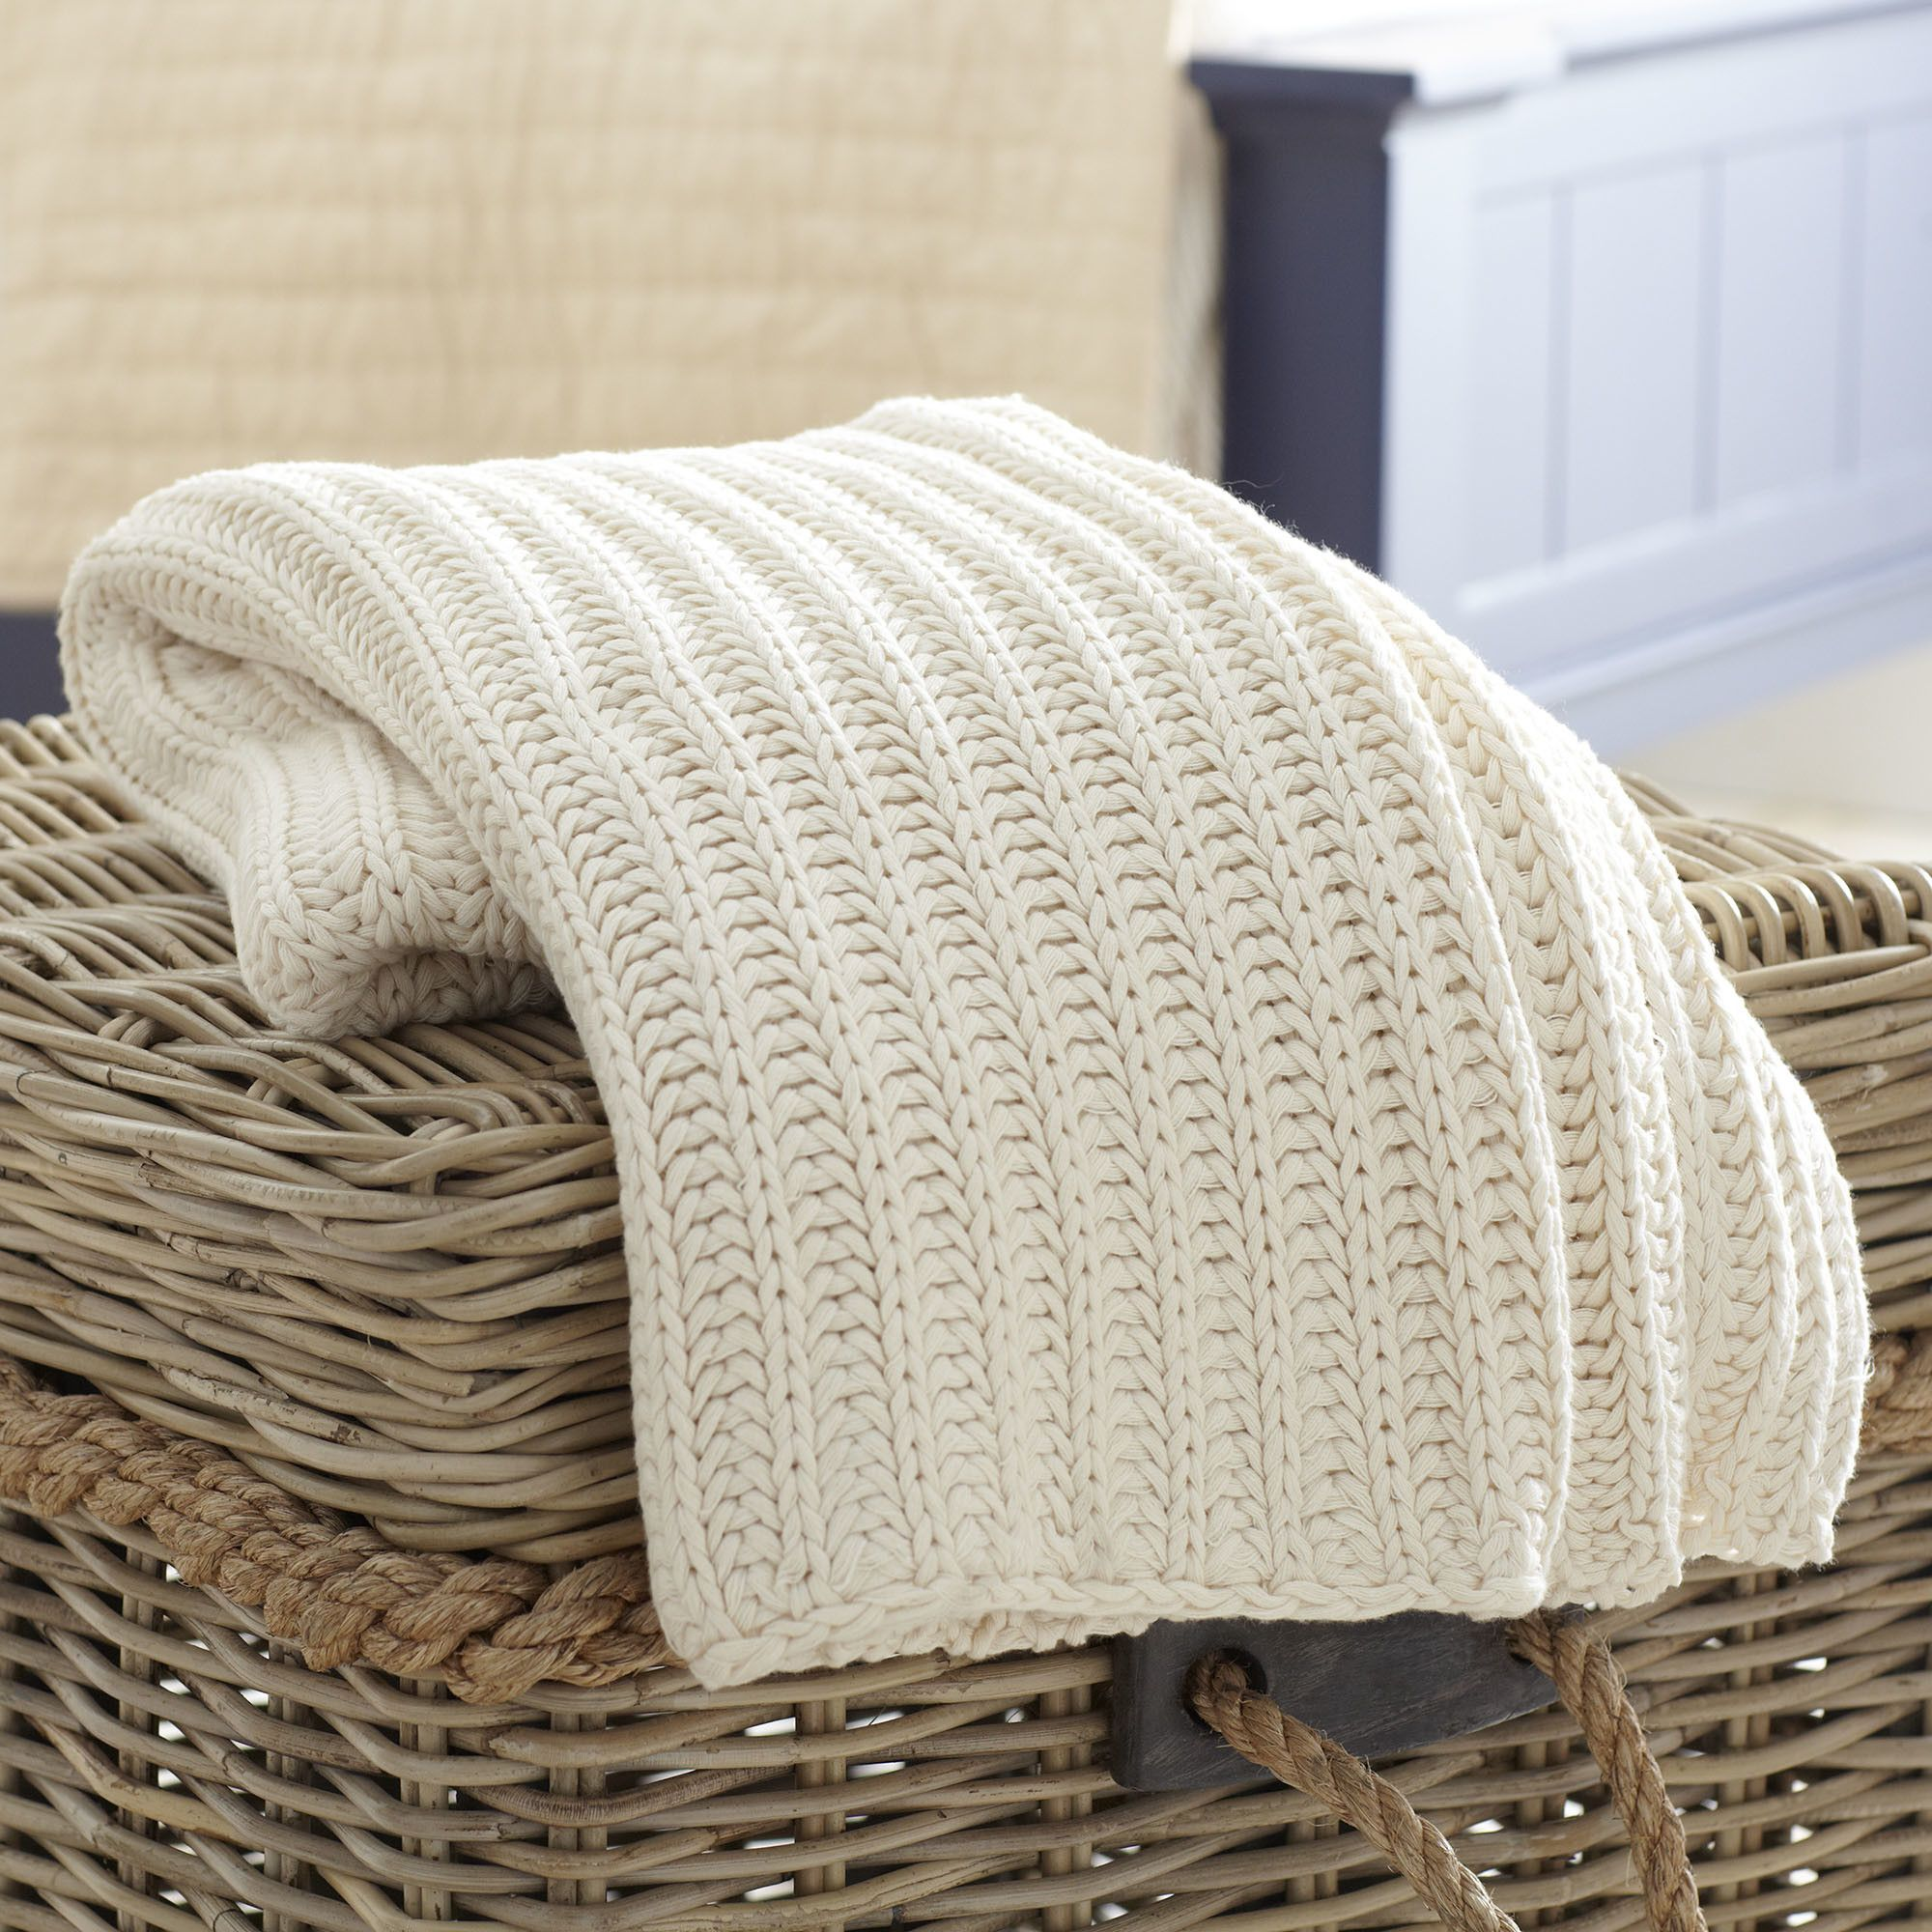 Megan Cotton Throw | A simple knitted pattern makes this cotton throw perfect for casually draping over your bed or favorite arm chair.